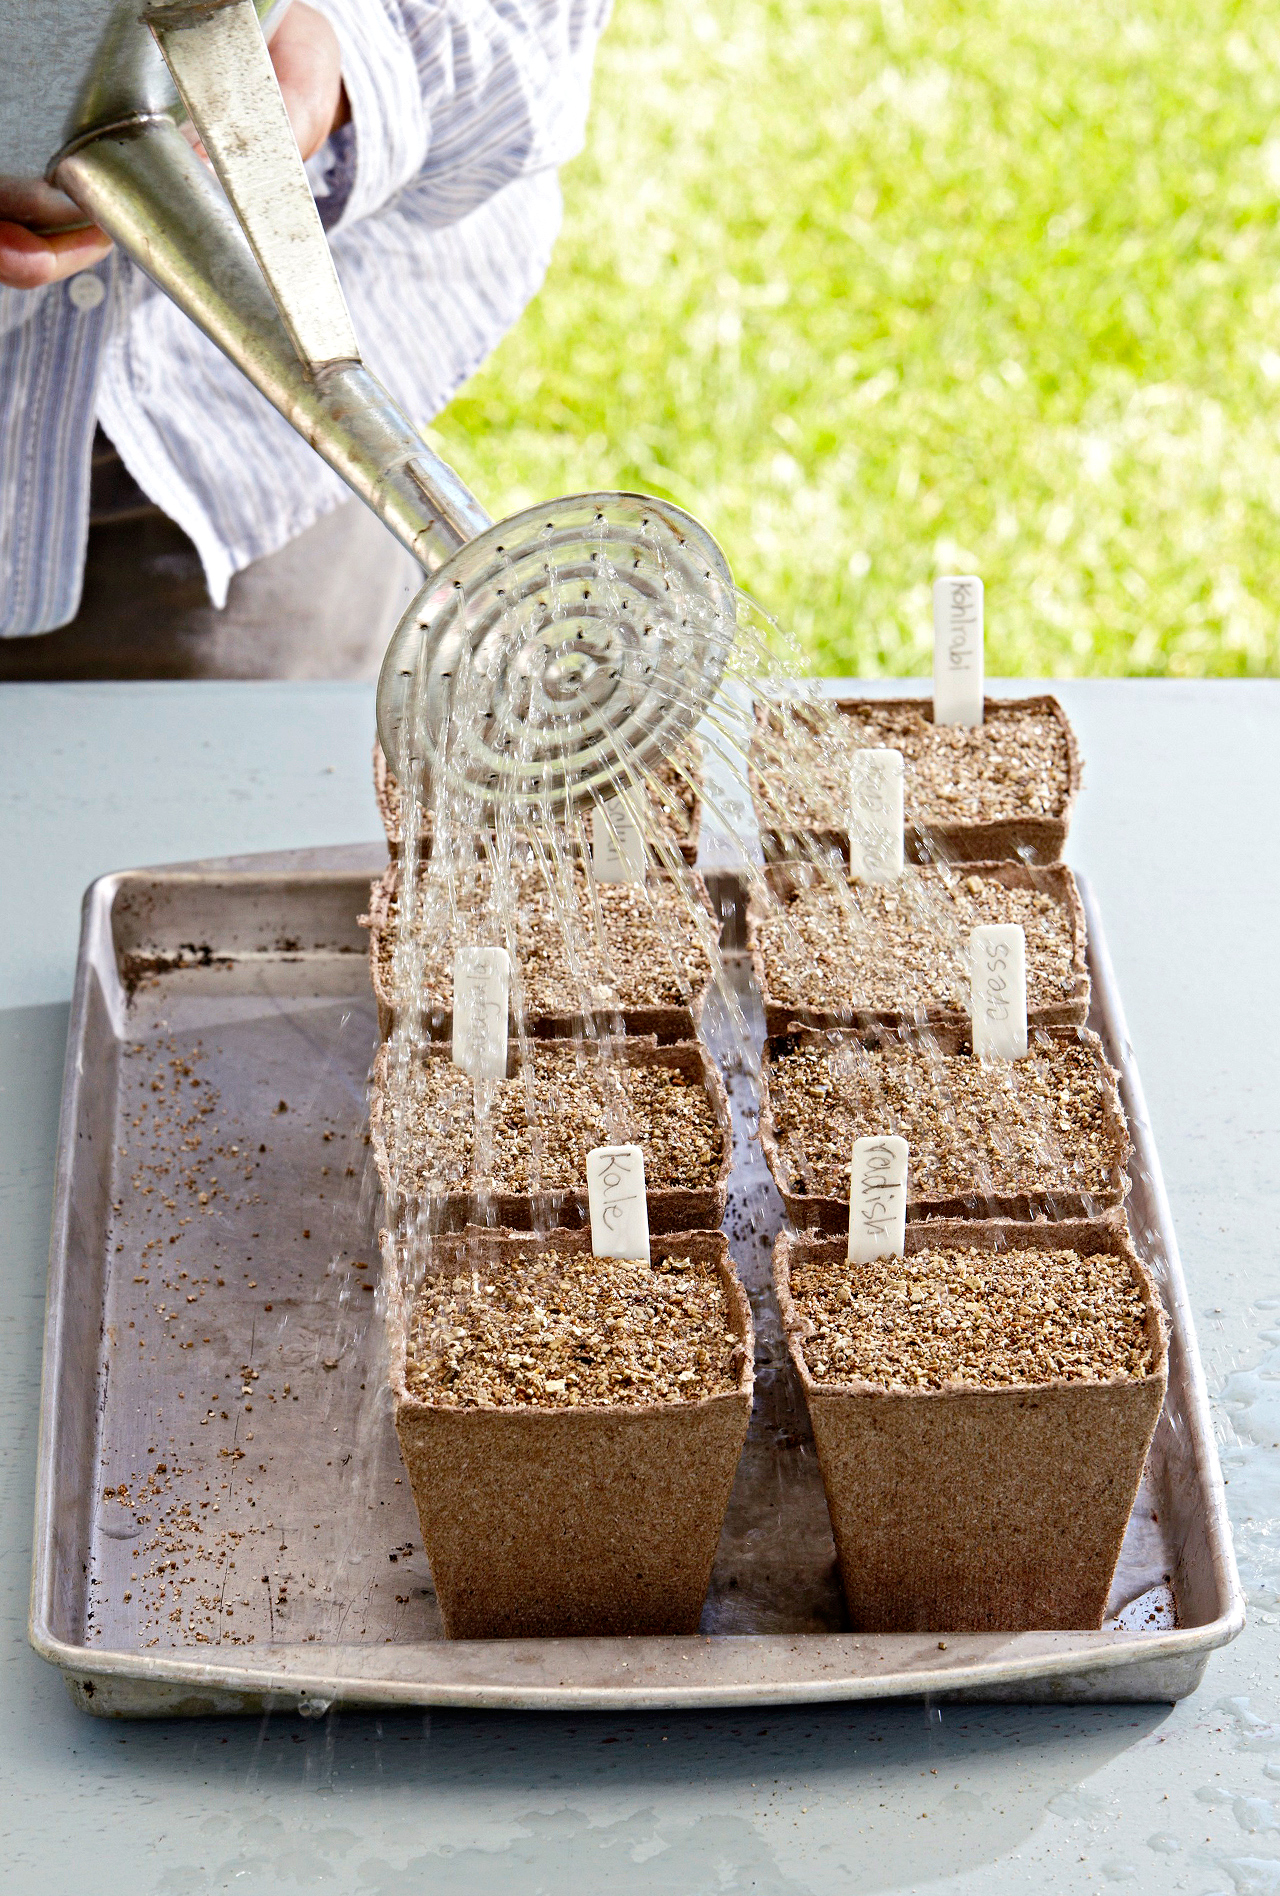 gently shower seeds with water after sown